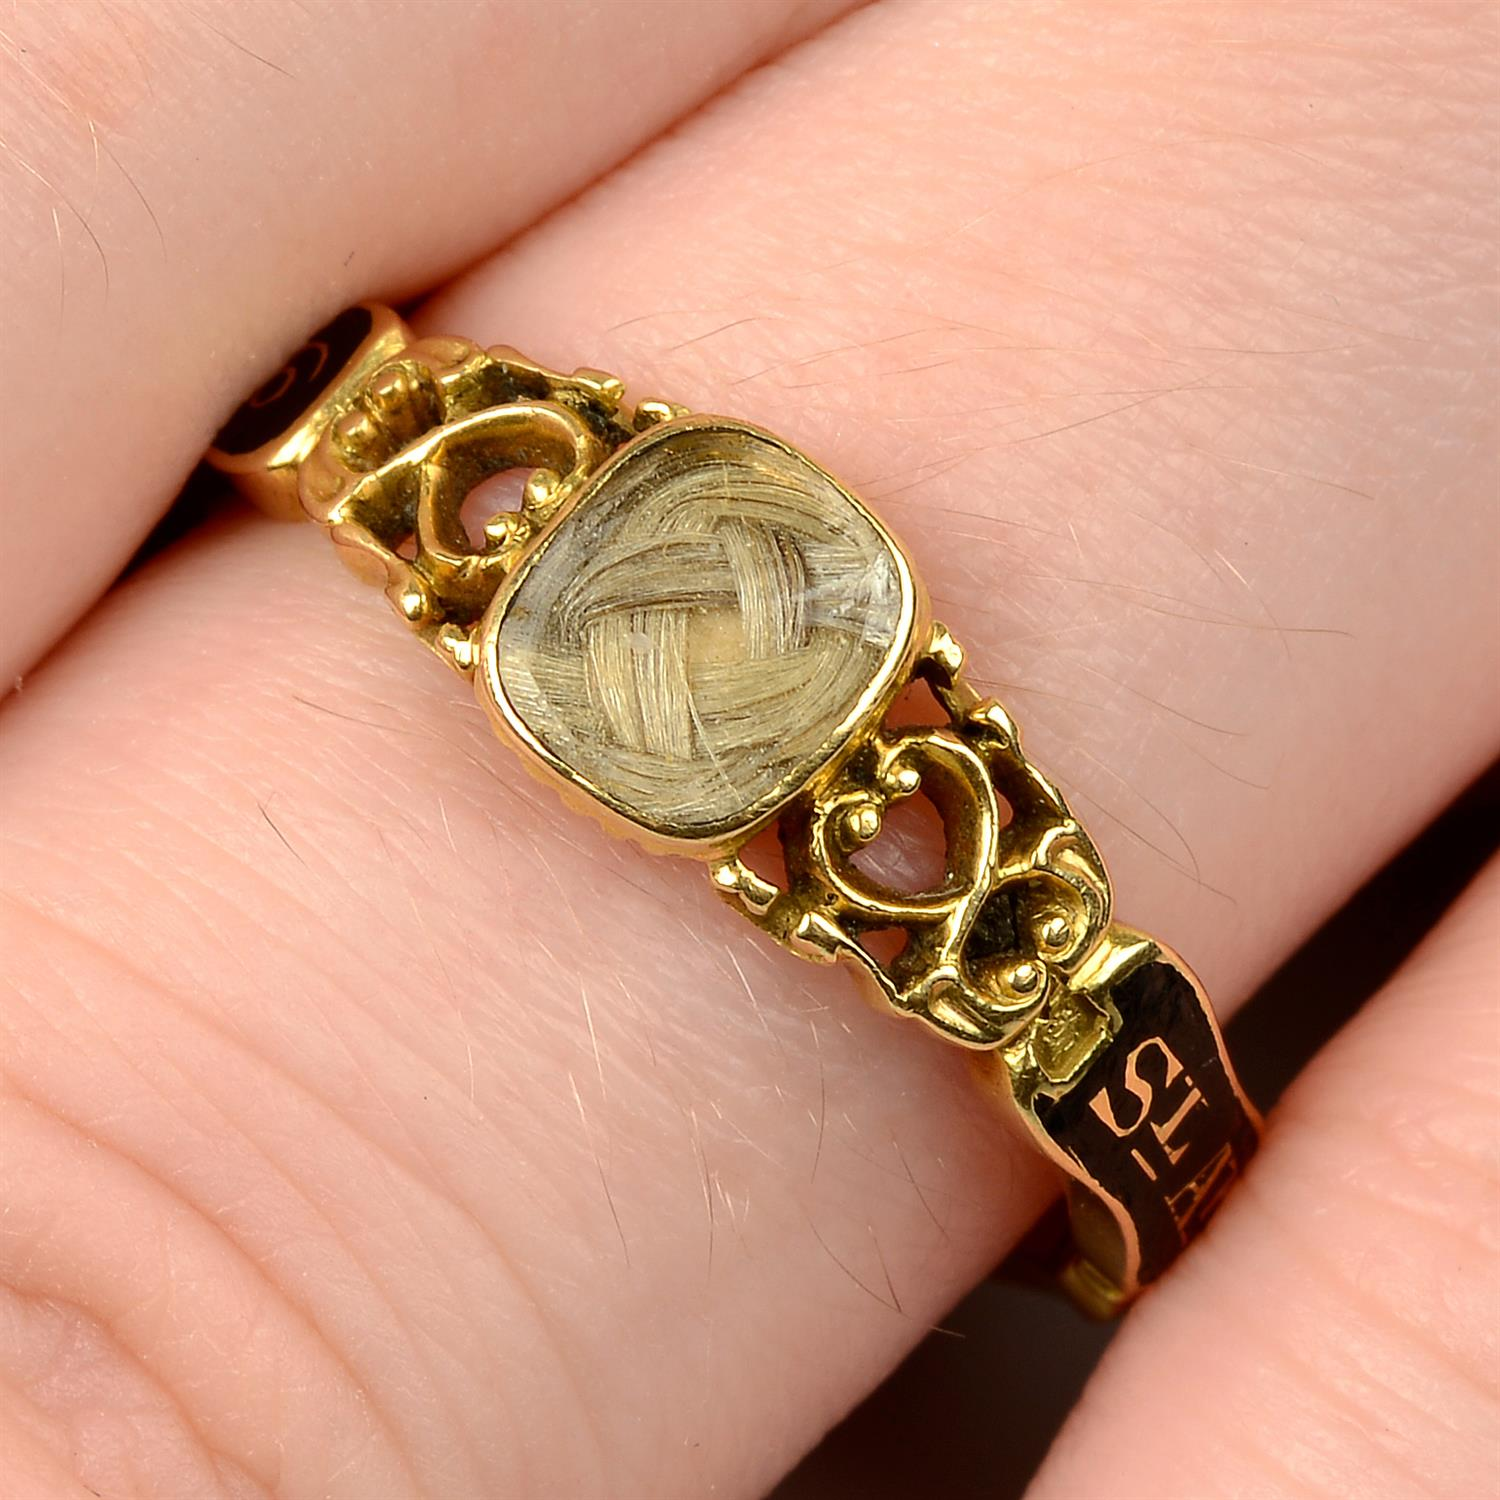 An early Victorian 18ct gold black enamel mourning ring, with pierced scrolling sides and woven